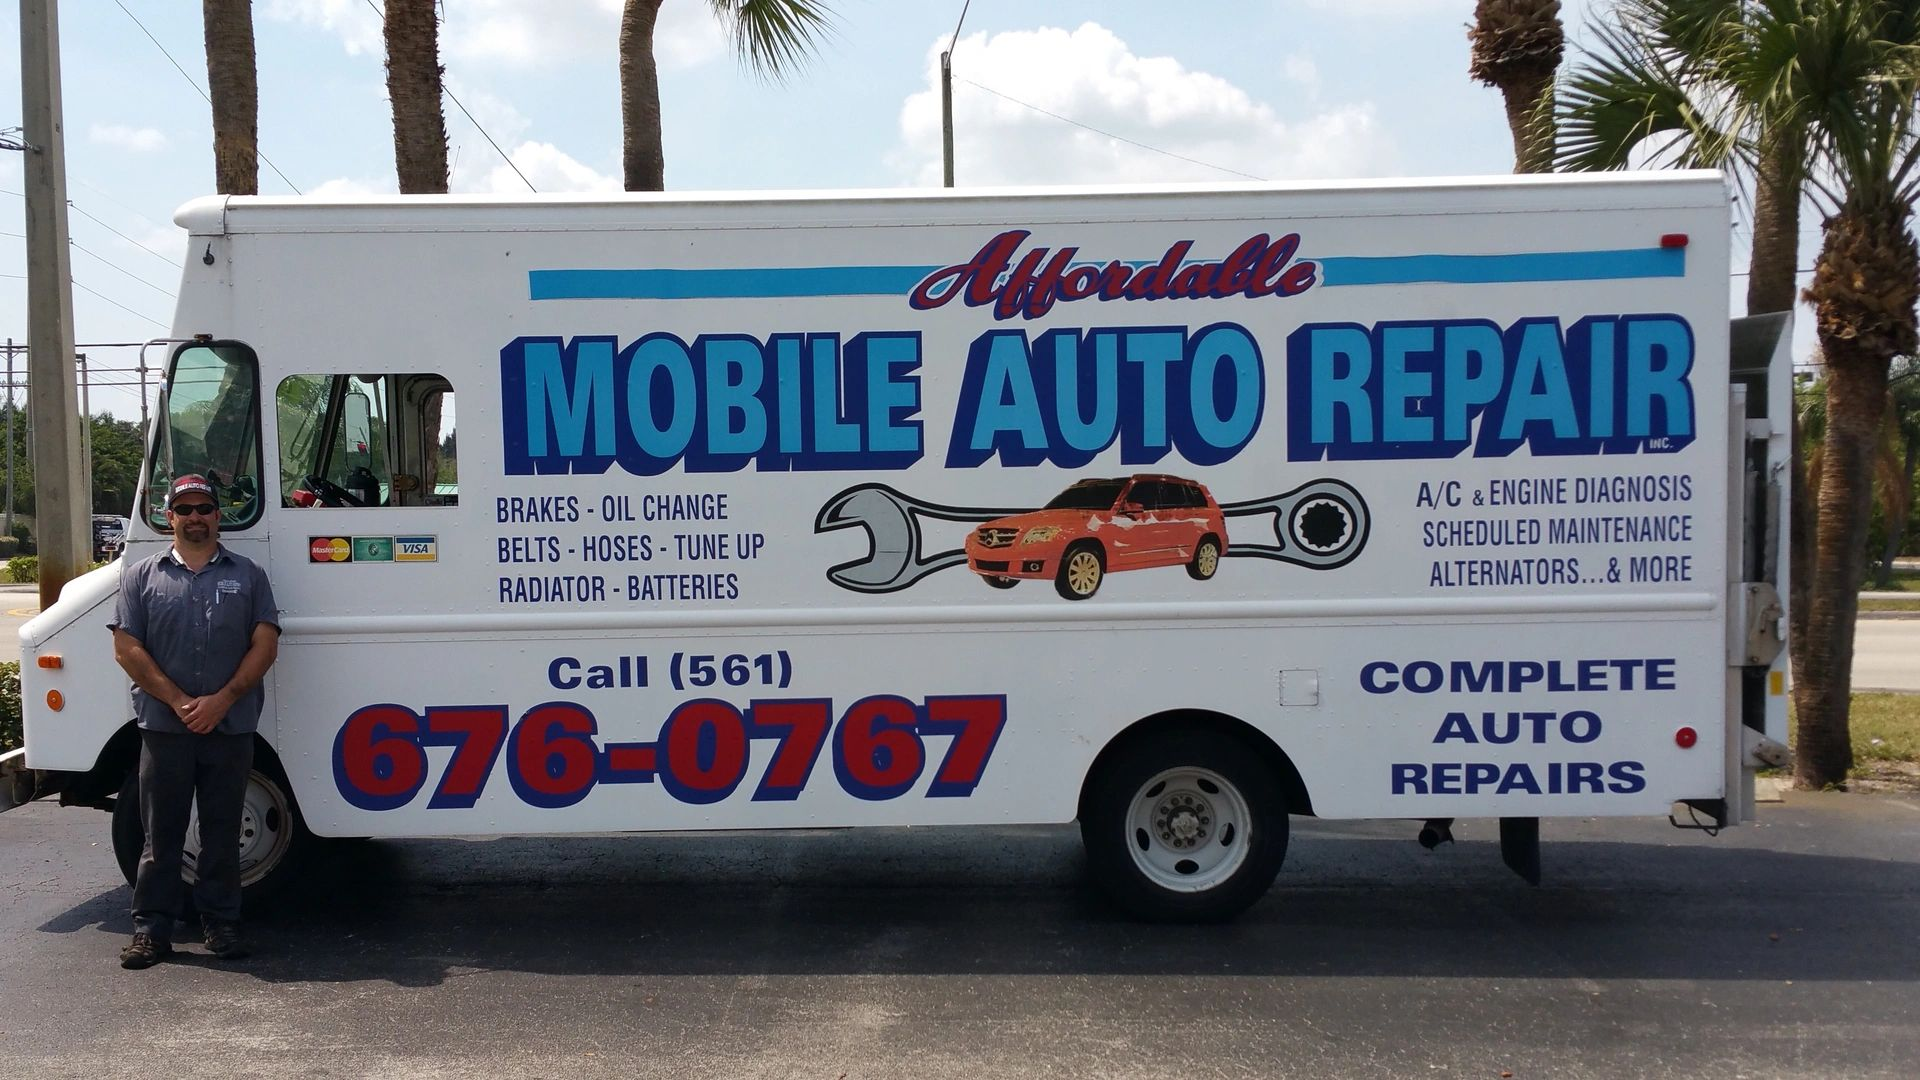 Mobile auto repair shop on wheels